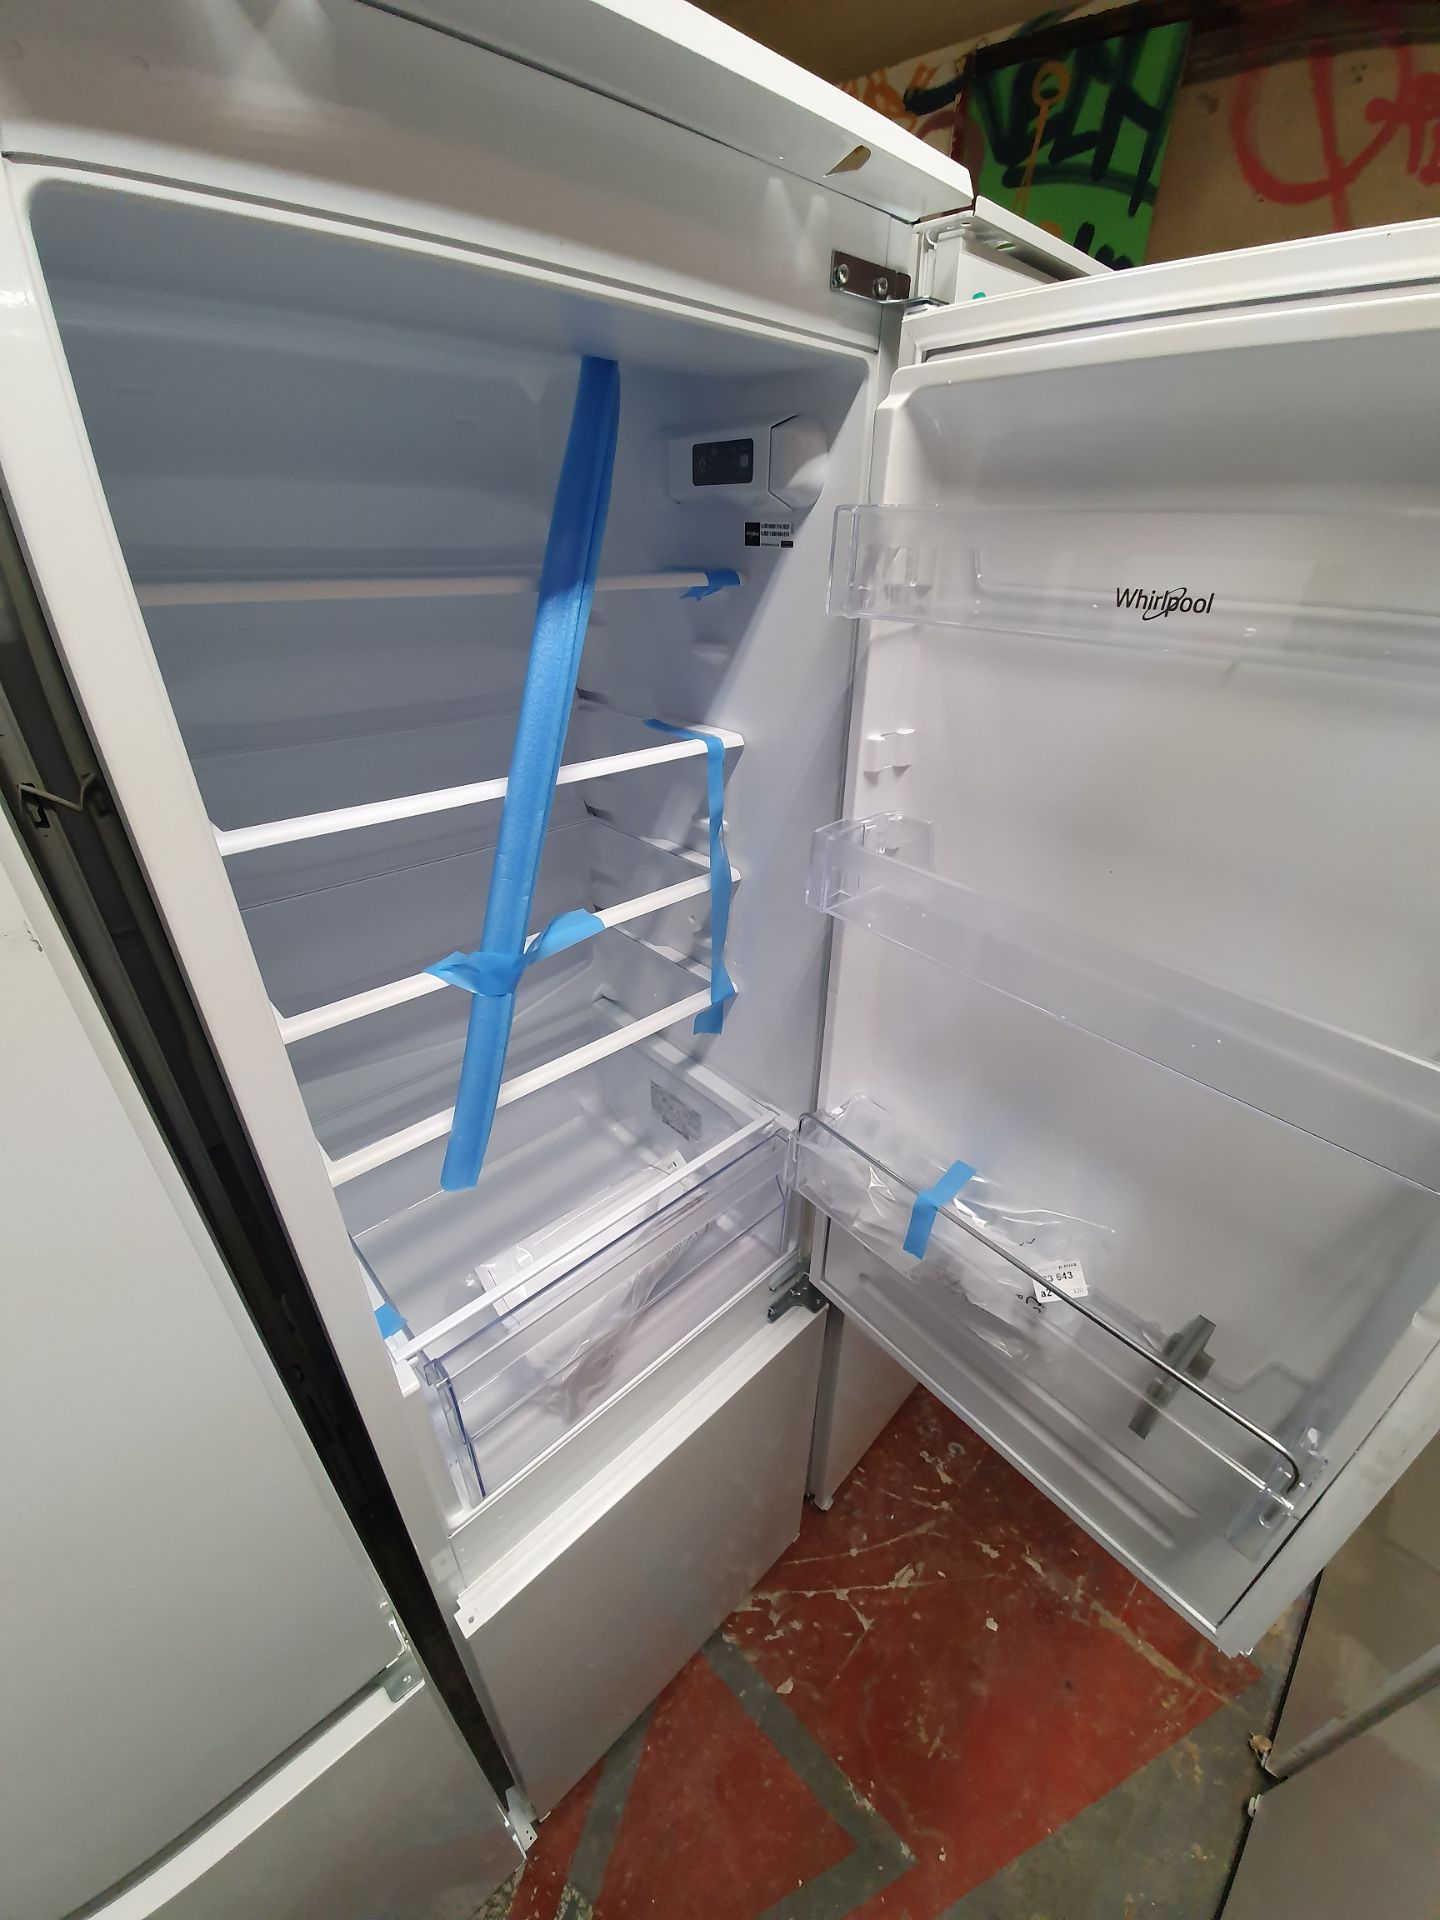 NEW/GRADED AND UNPACKAGED Prima PRRF500 50/50 * Frost Free * Integrated Fridge Freezer (Brand new - Image 10 of 14